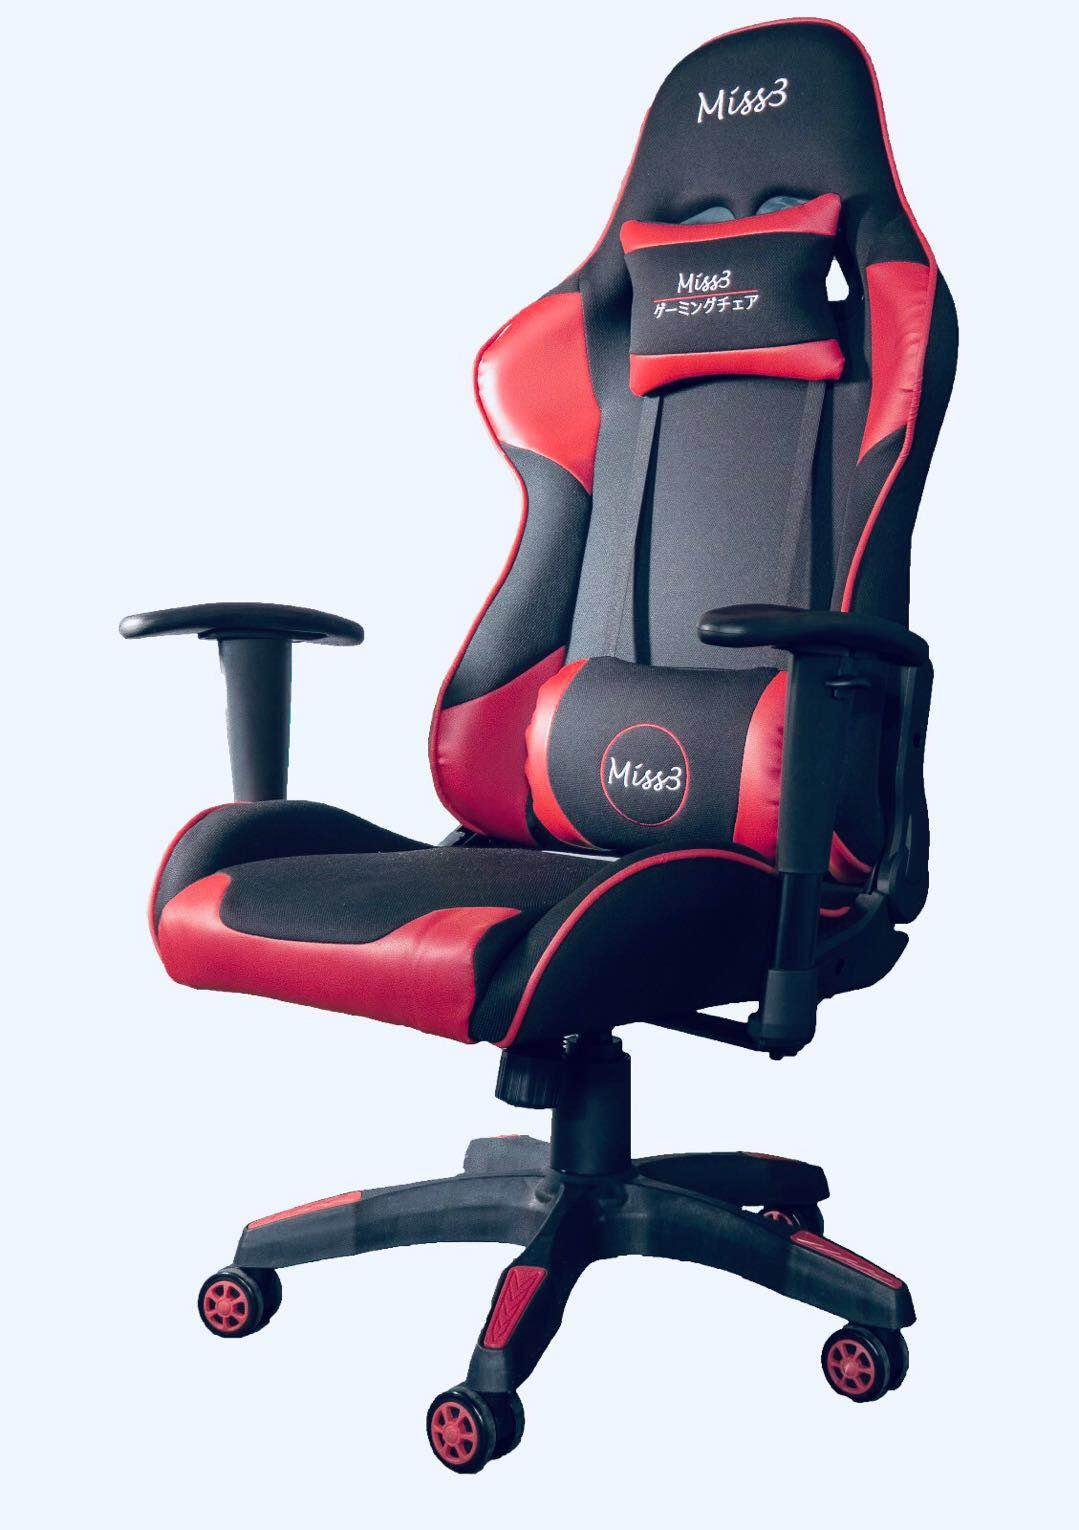 1 Year Warranty / Free Installation - Miss3 Proffesional Gaming Chair GC07 - Cotton with Leather , 180 degree lean back function Singapore